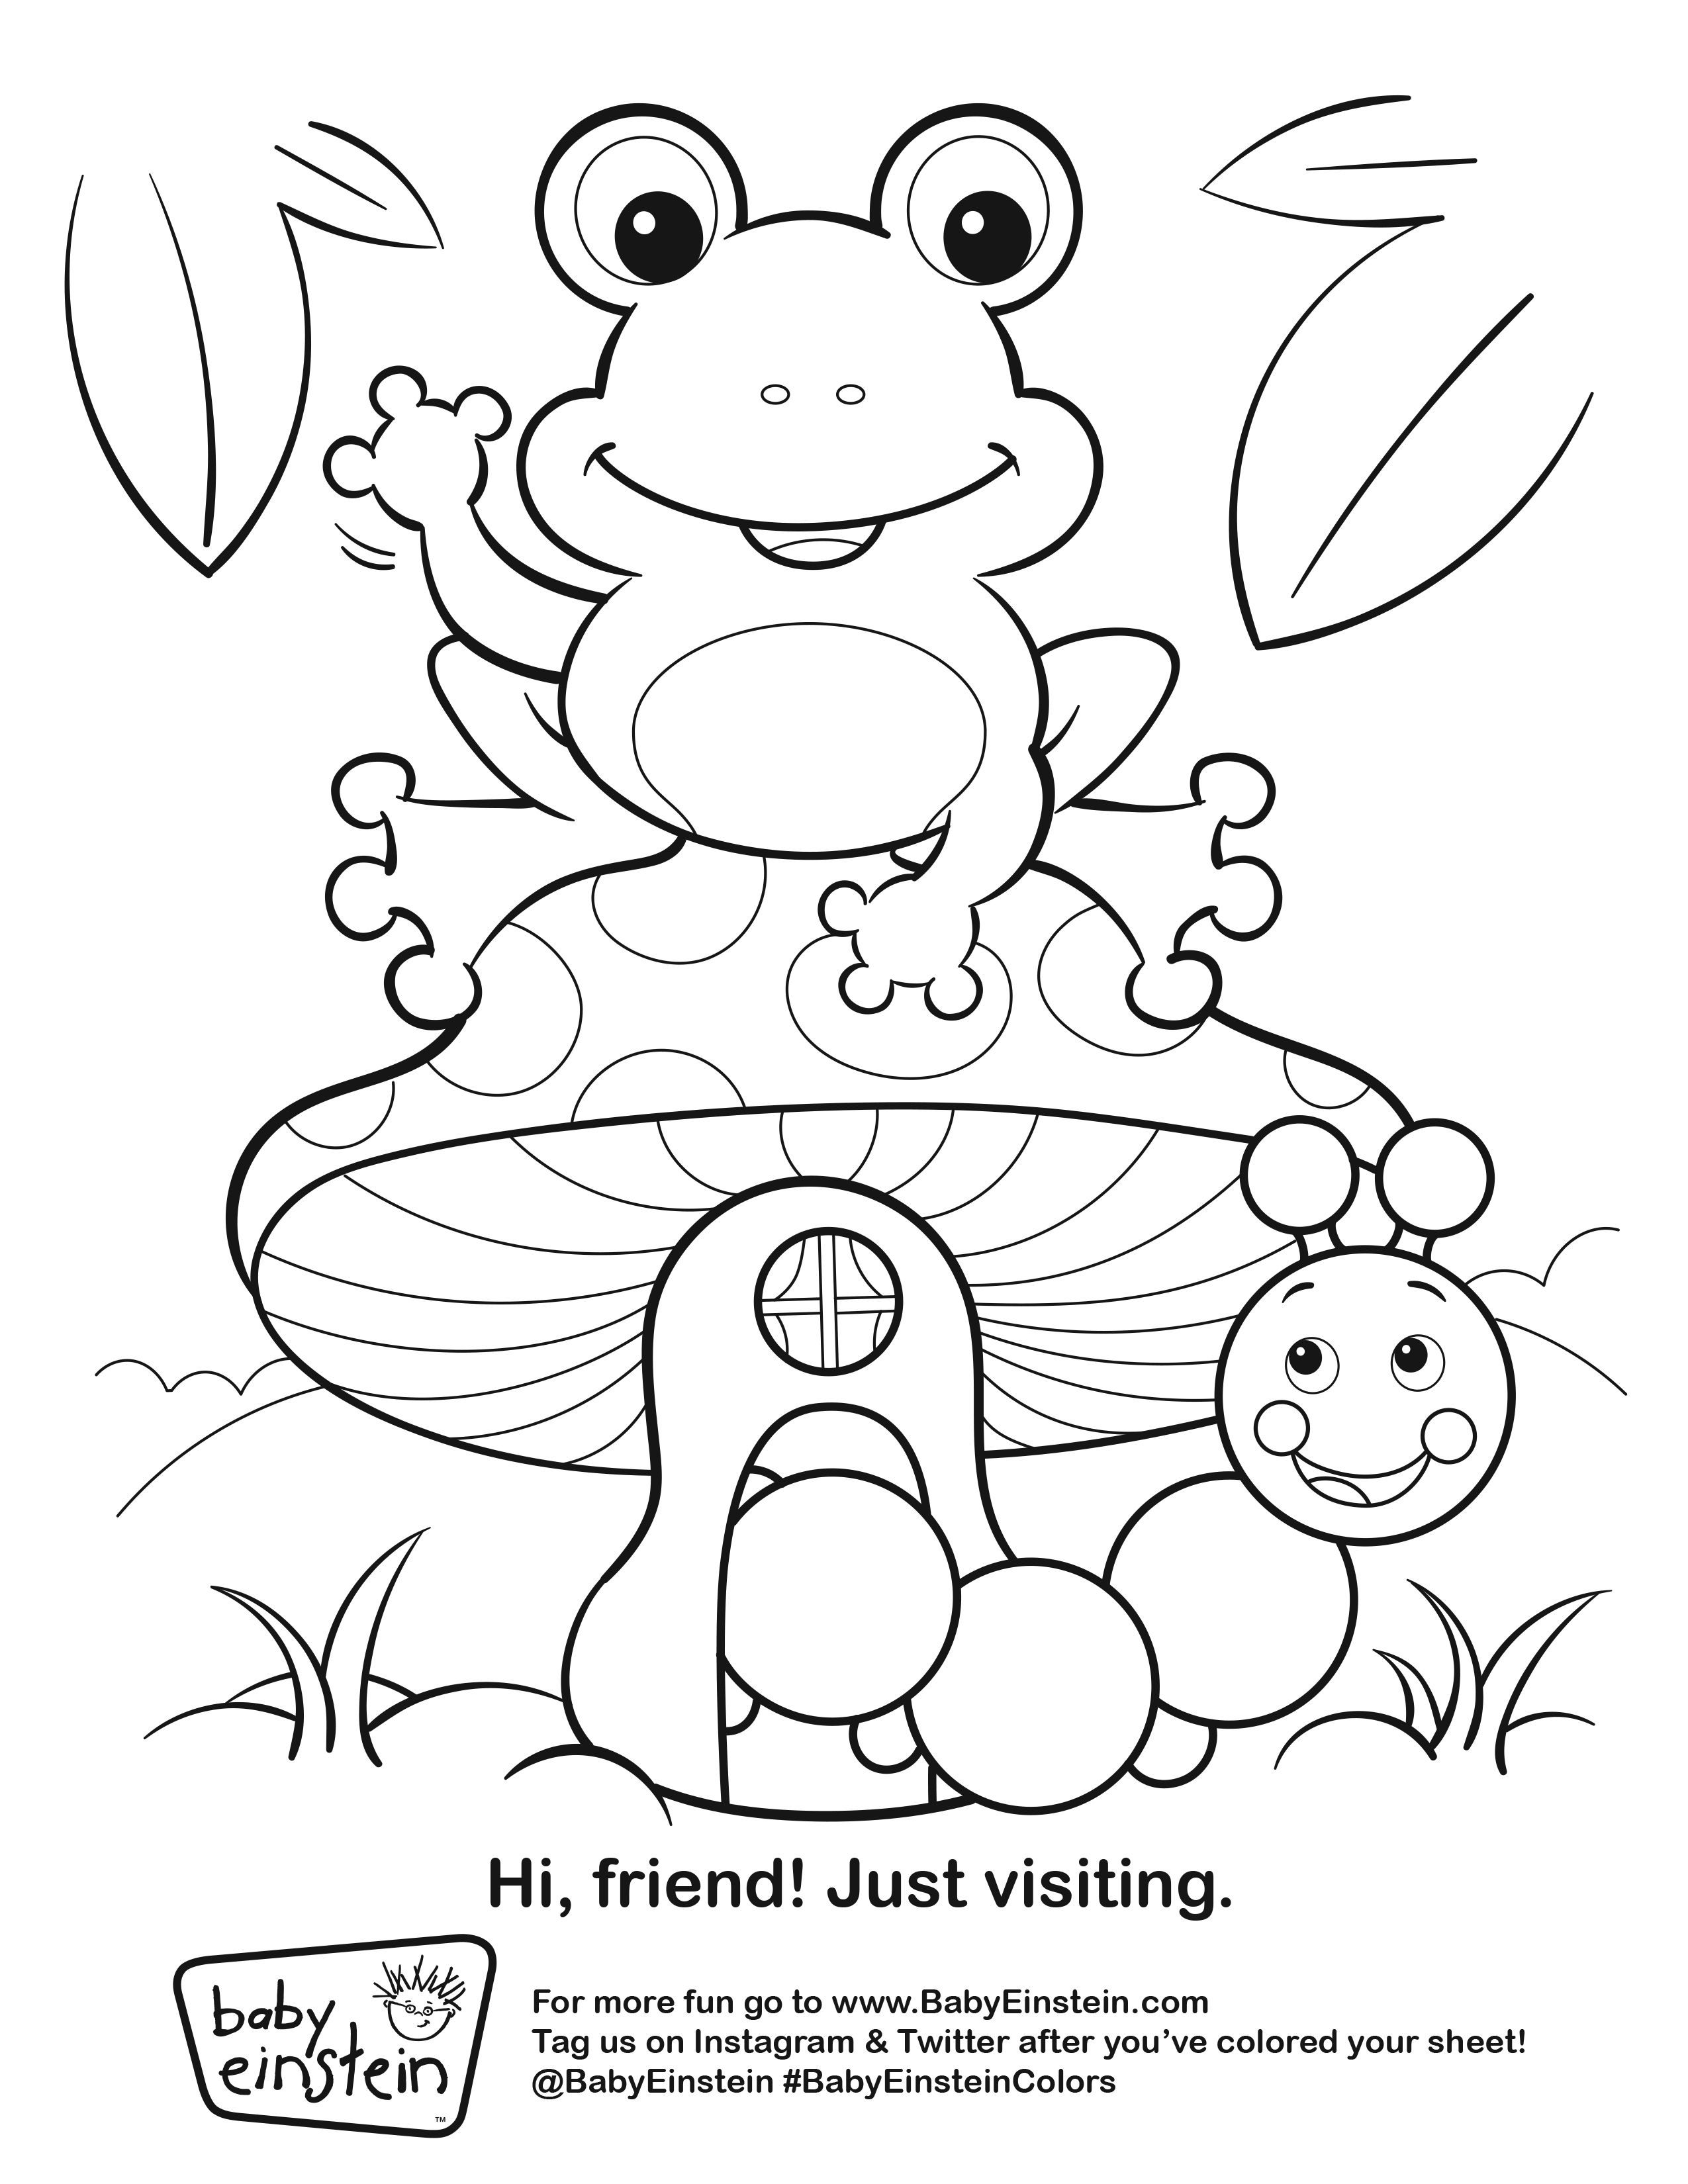 Daylight Savings Time Coloring Pages At Getdrawings